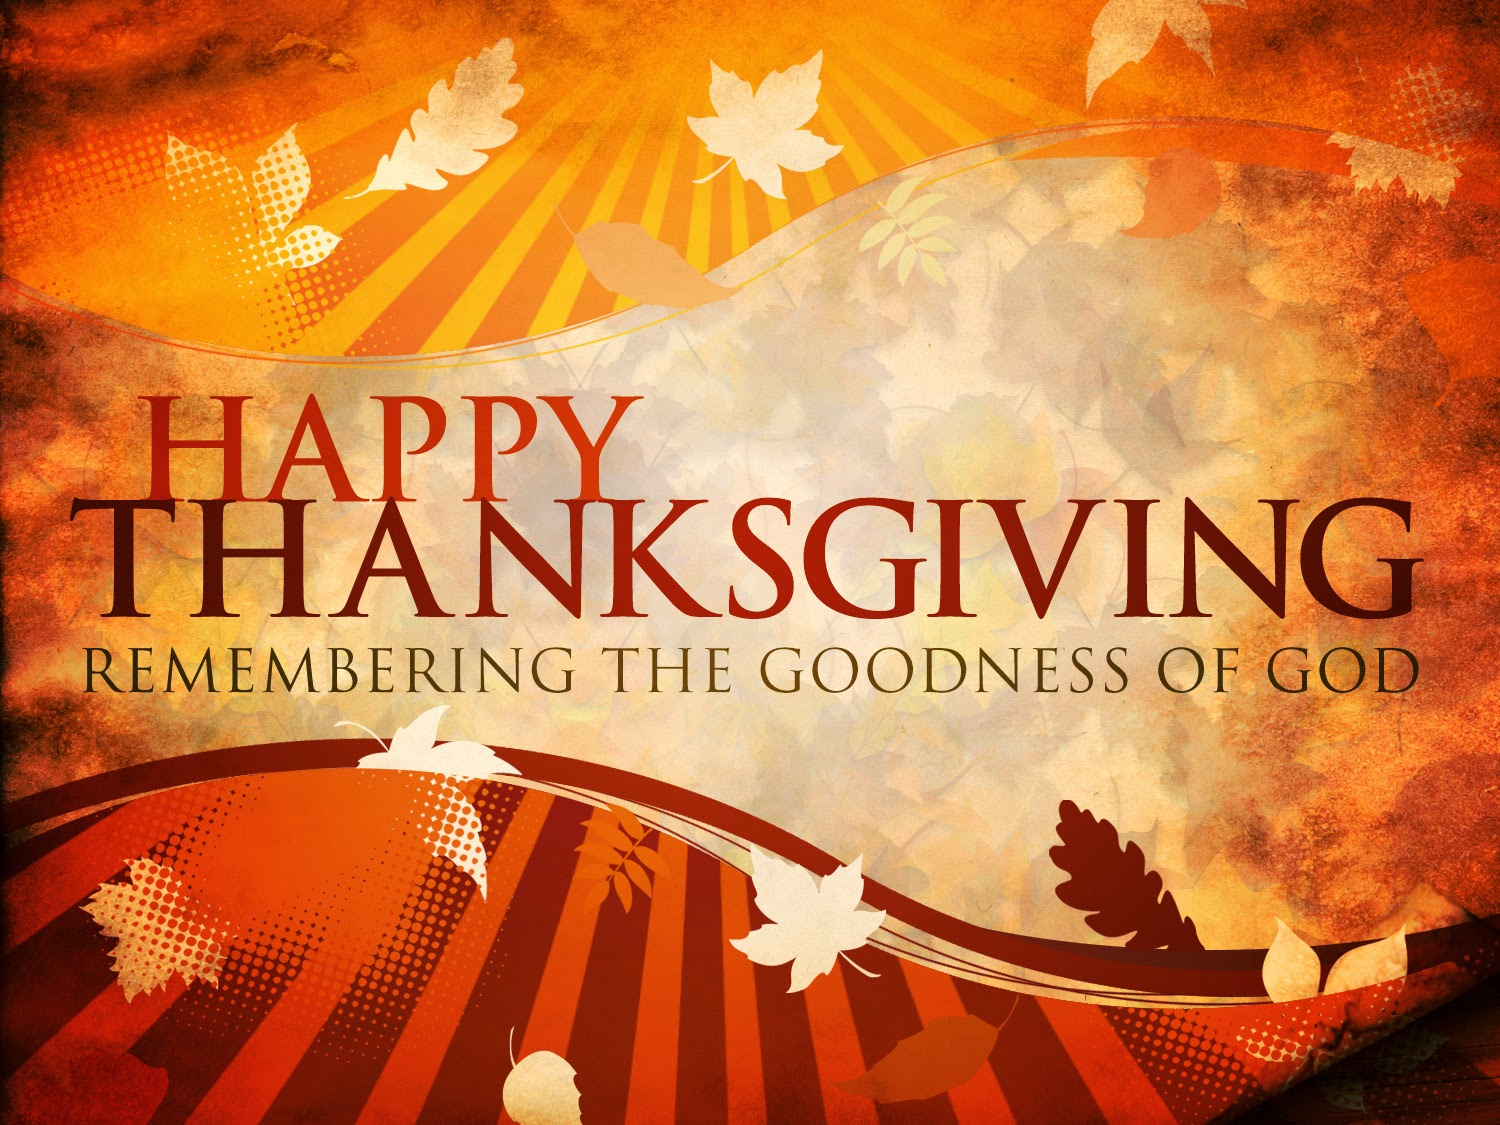 A Thanksgiving Worship Service Will Be Held On Wednesday November 26 7 Pm In The Chapel If You Have Never Participated In The Holden Evening Prayer